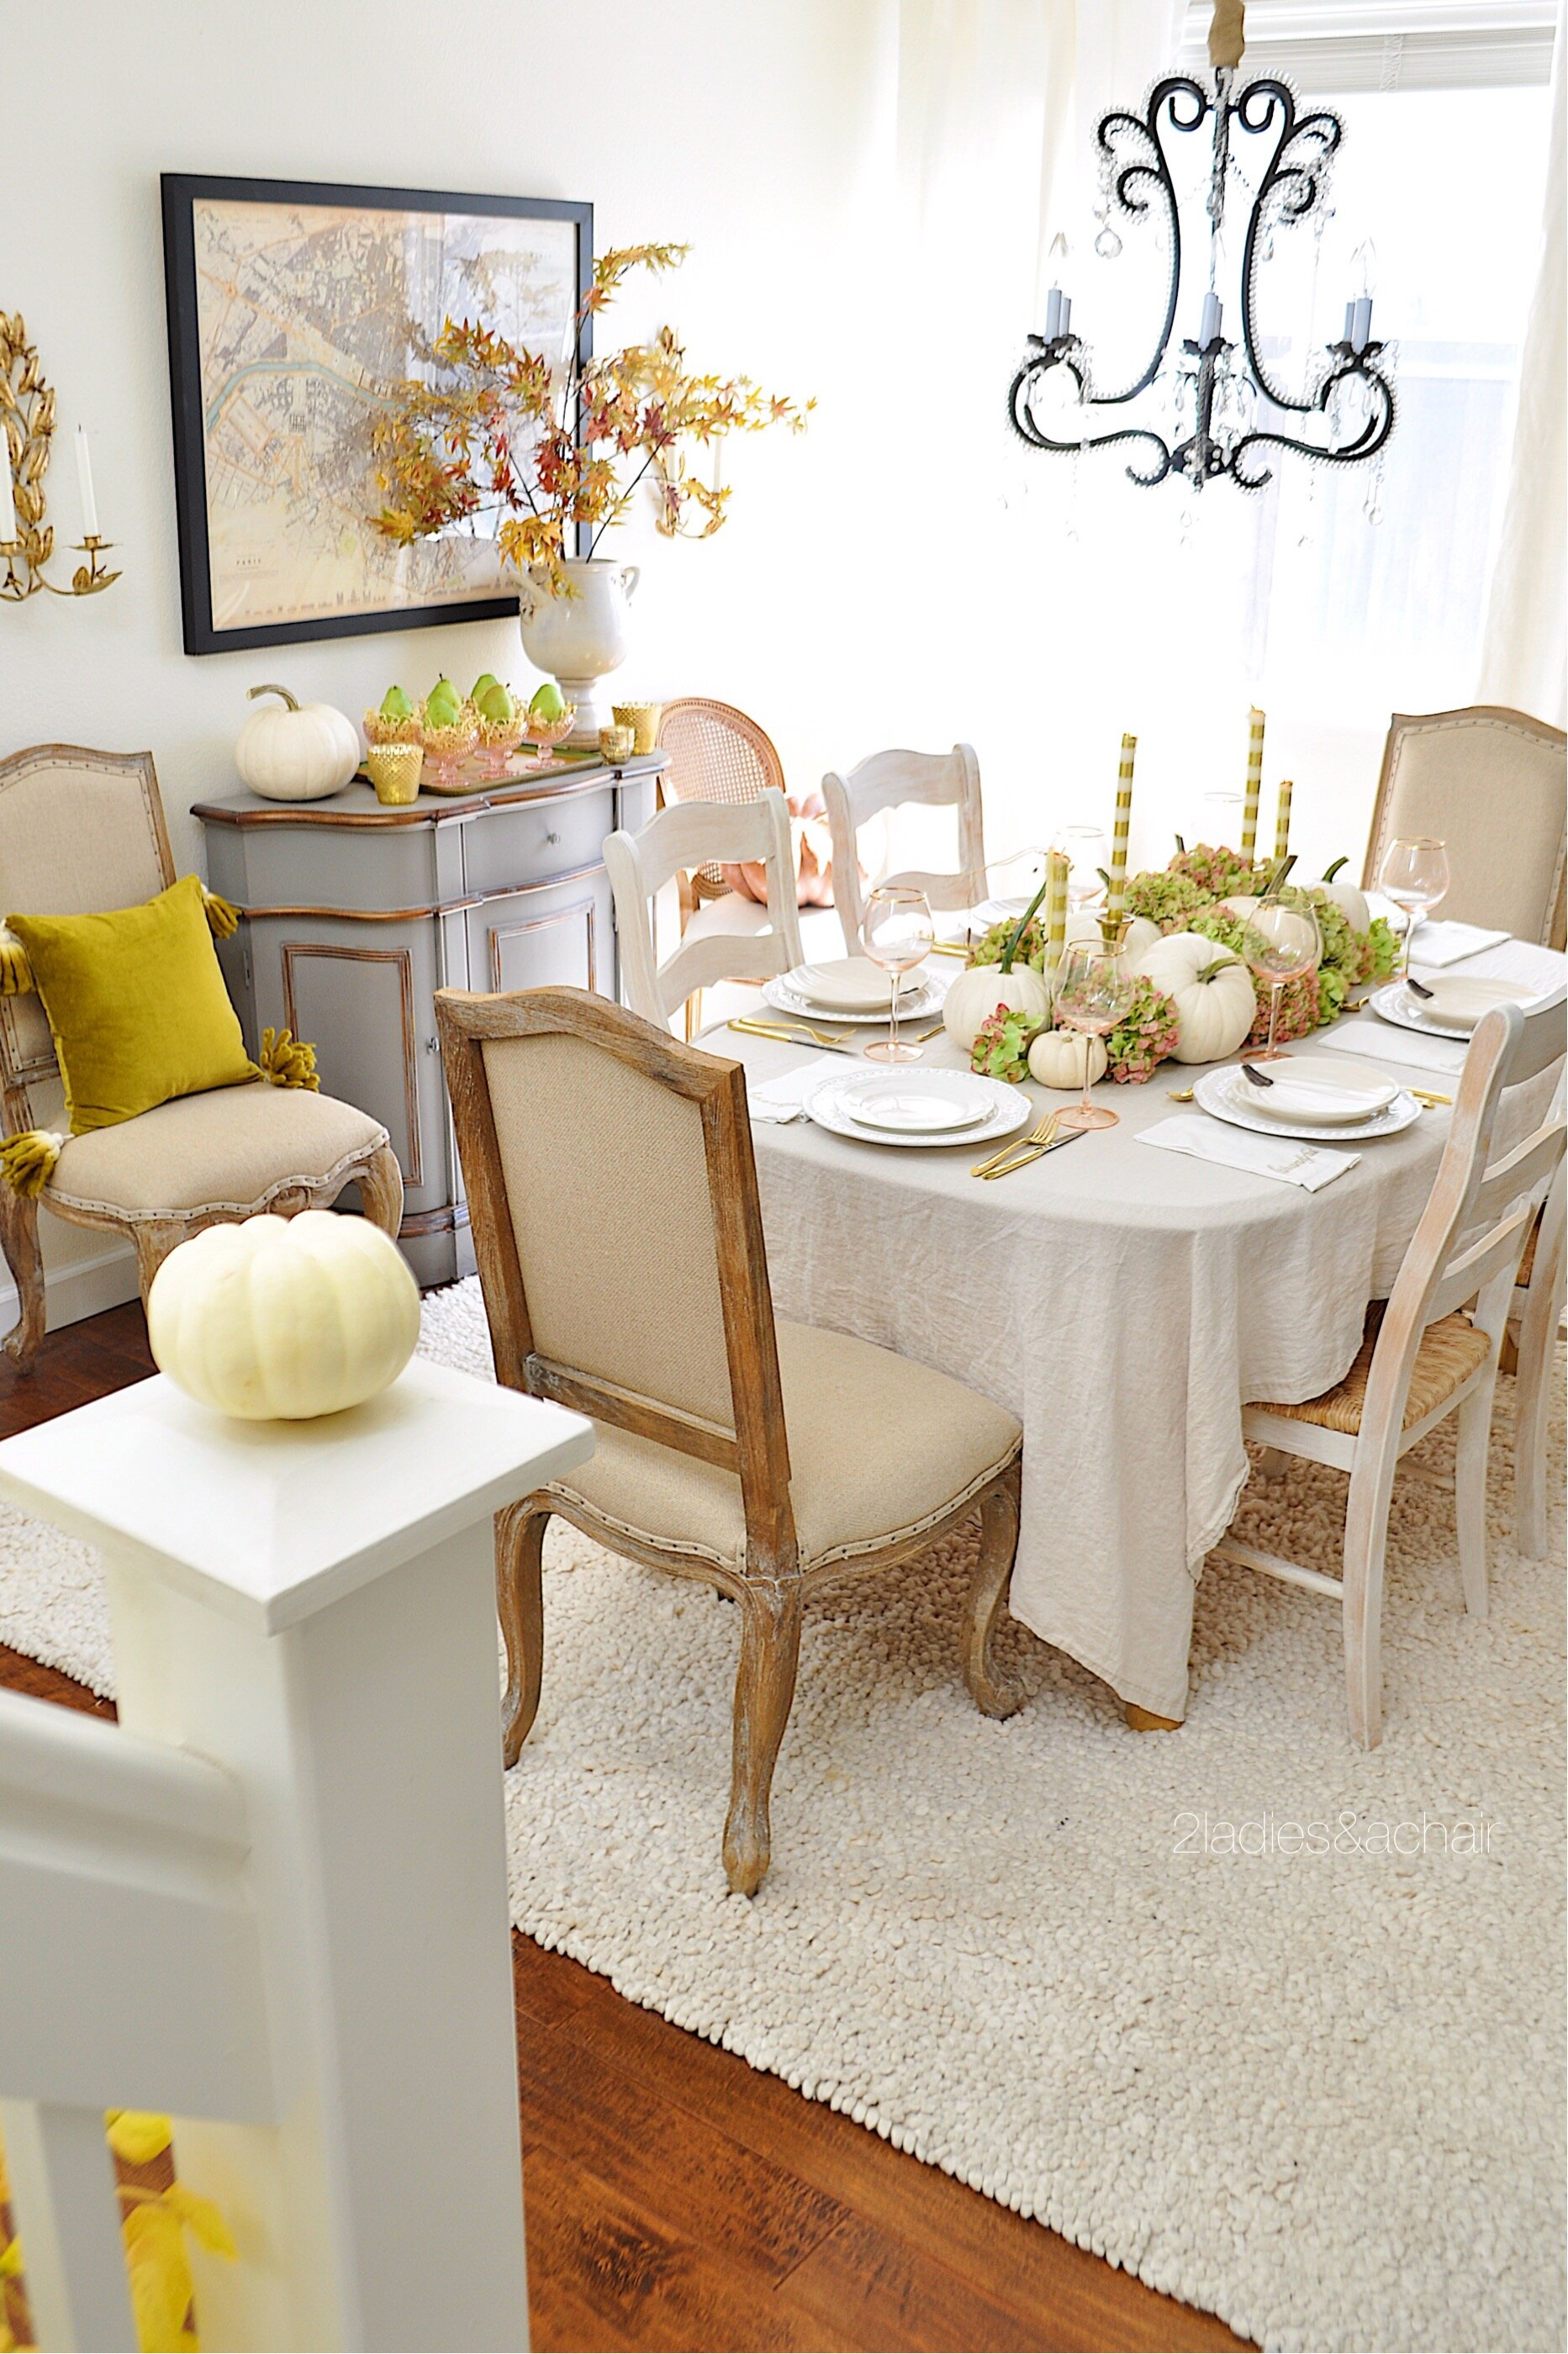 thanksgiving table IMG_1477.JPG